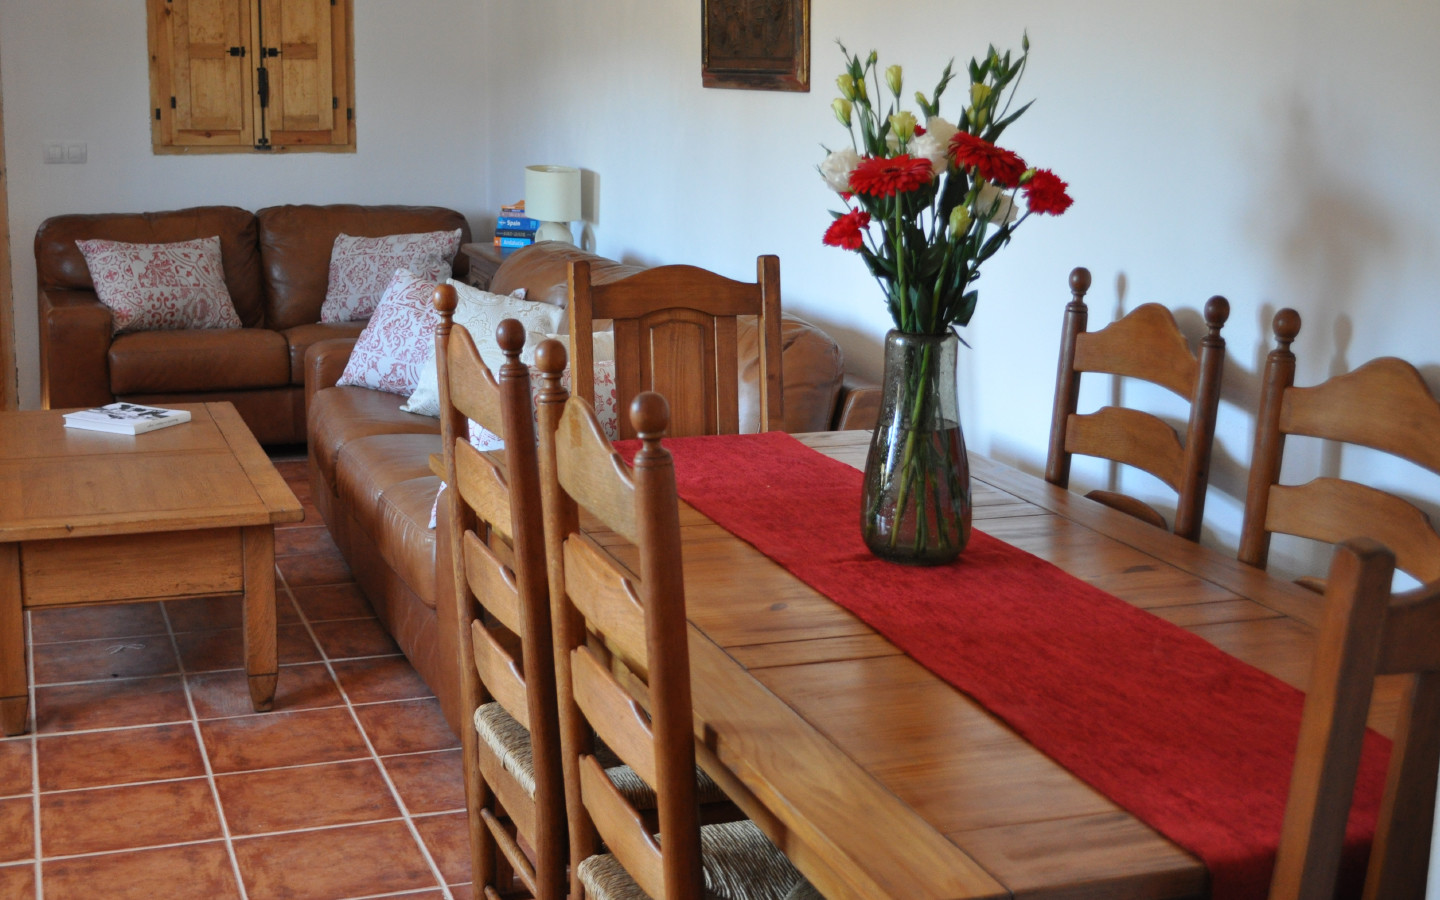 dining_room_huerta_pequenahuerta_pequena_self catering_holiday_accommodation_Montefrio_www.rural-andalucia.com